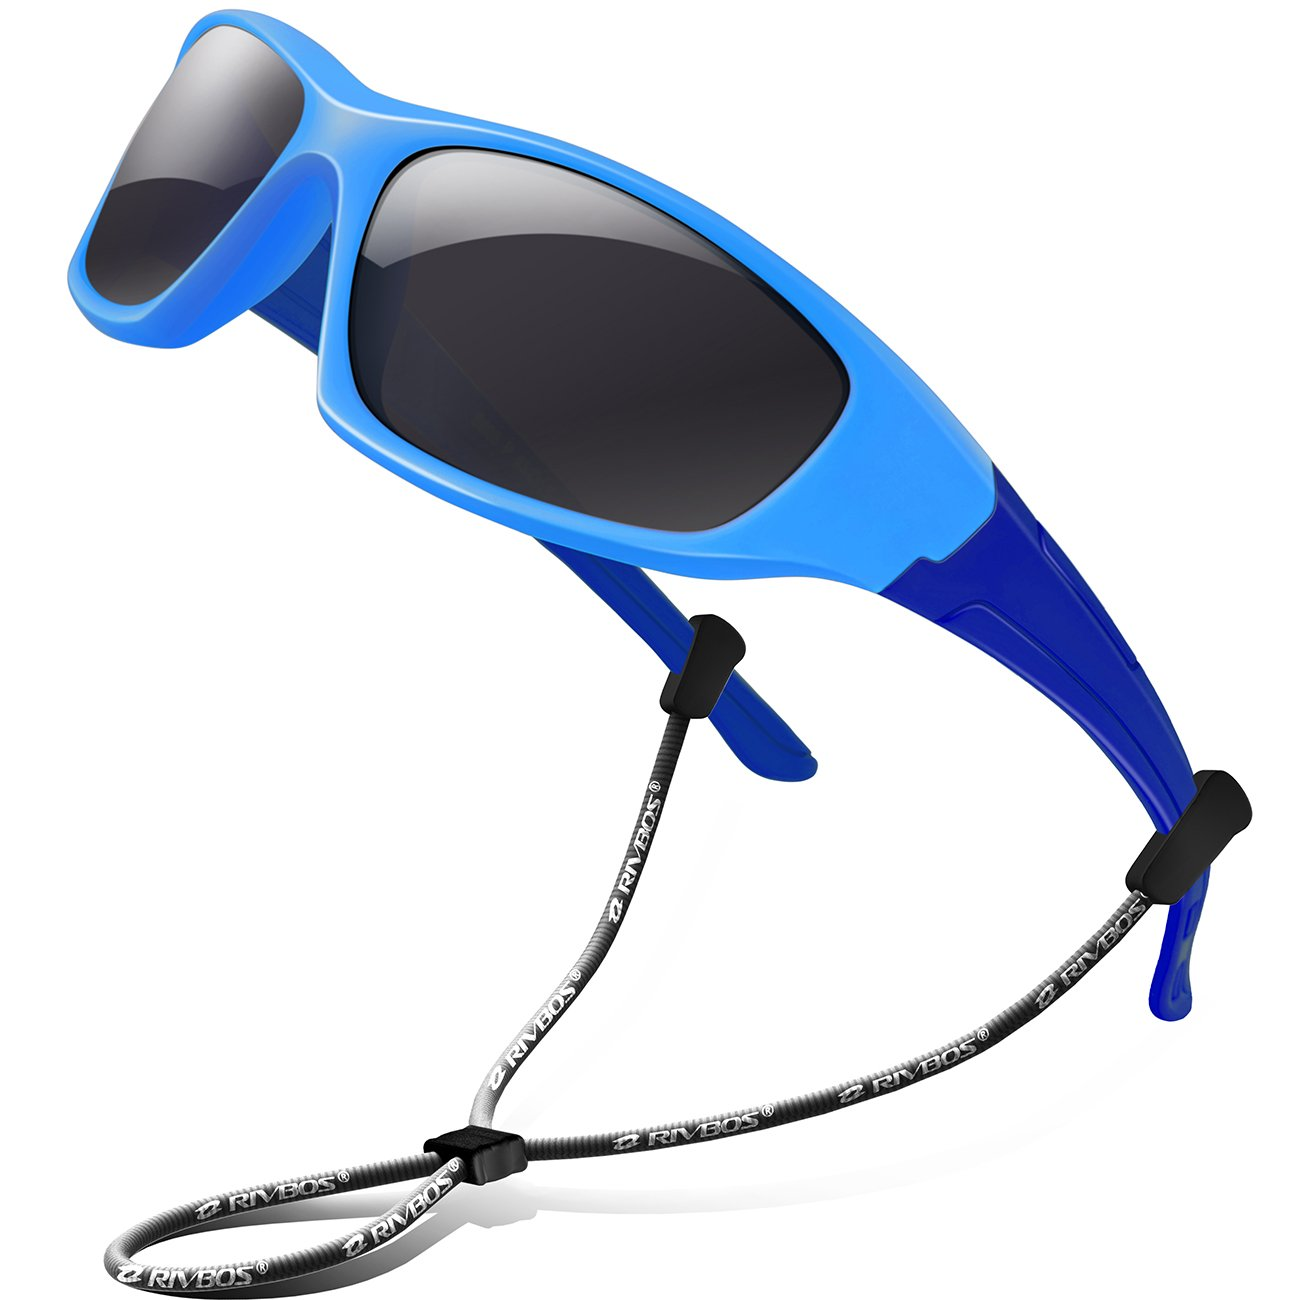 RIVBOS Rubber Kids Polarized Sunglasses With Strap Glasses Shades for Boys Girls Baby and Children Age 3-10 RBK003 (Blue&blue) RBK003-22